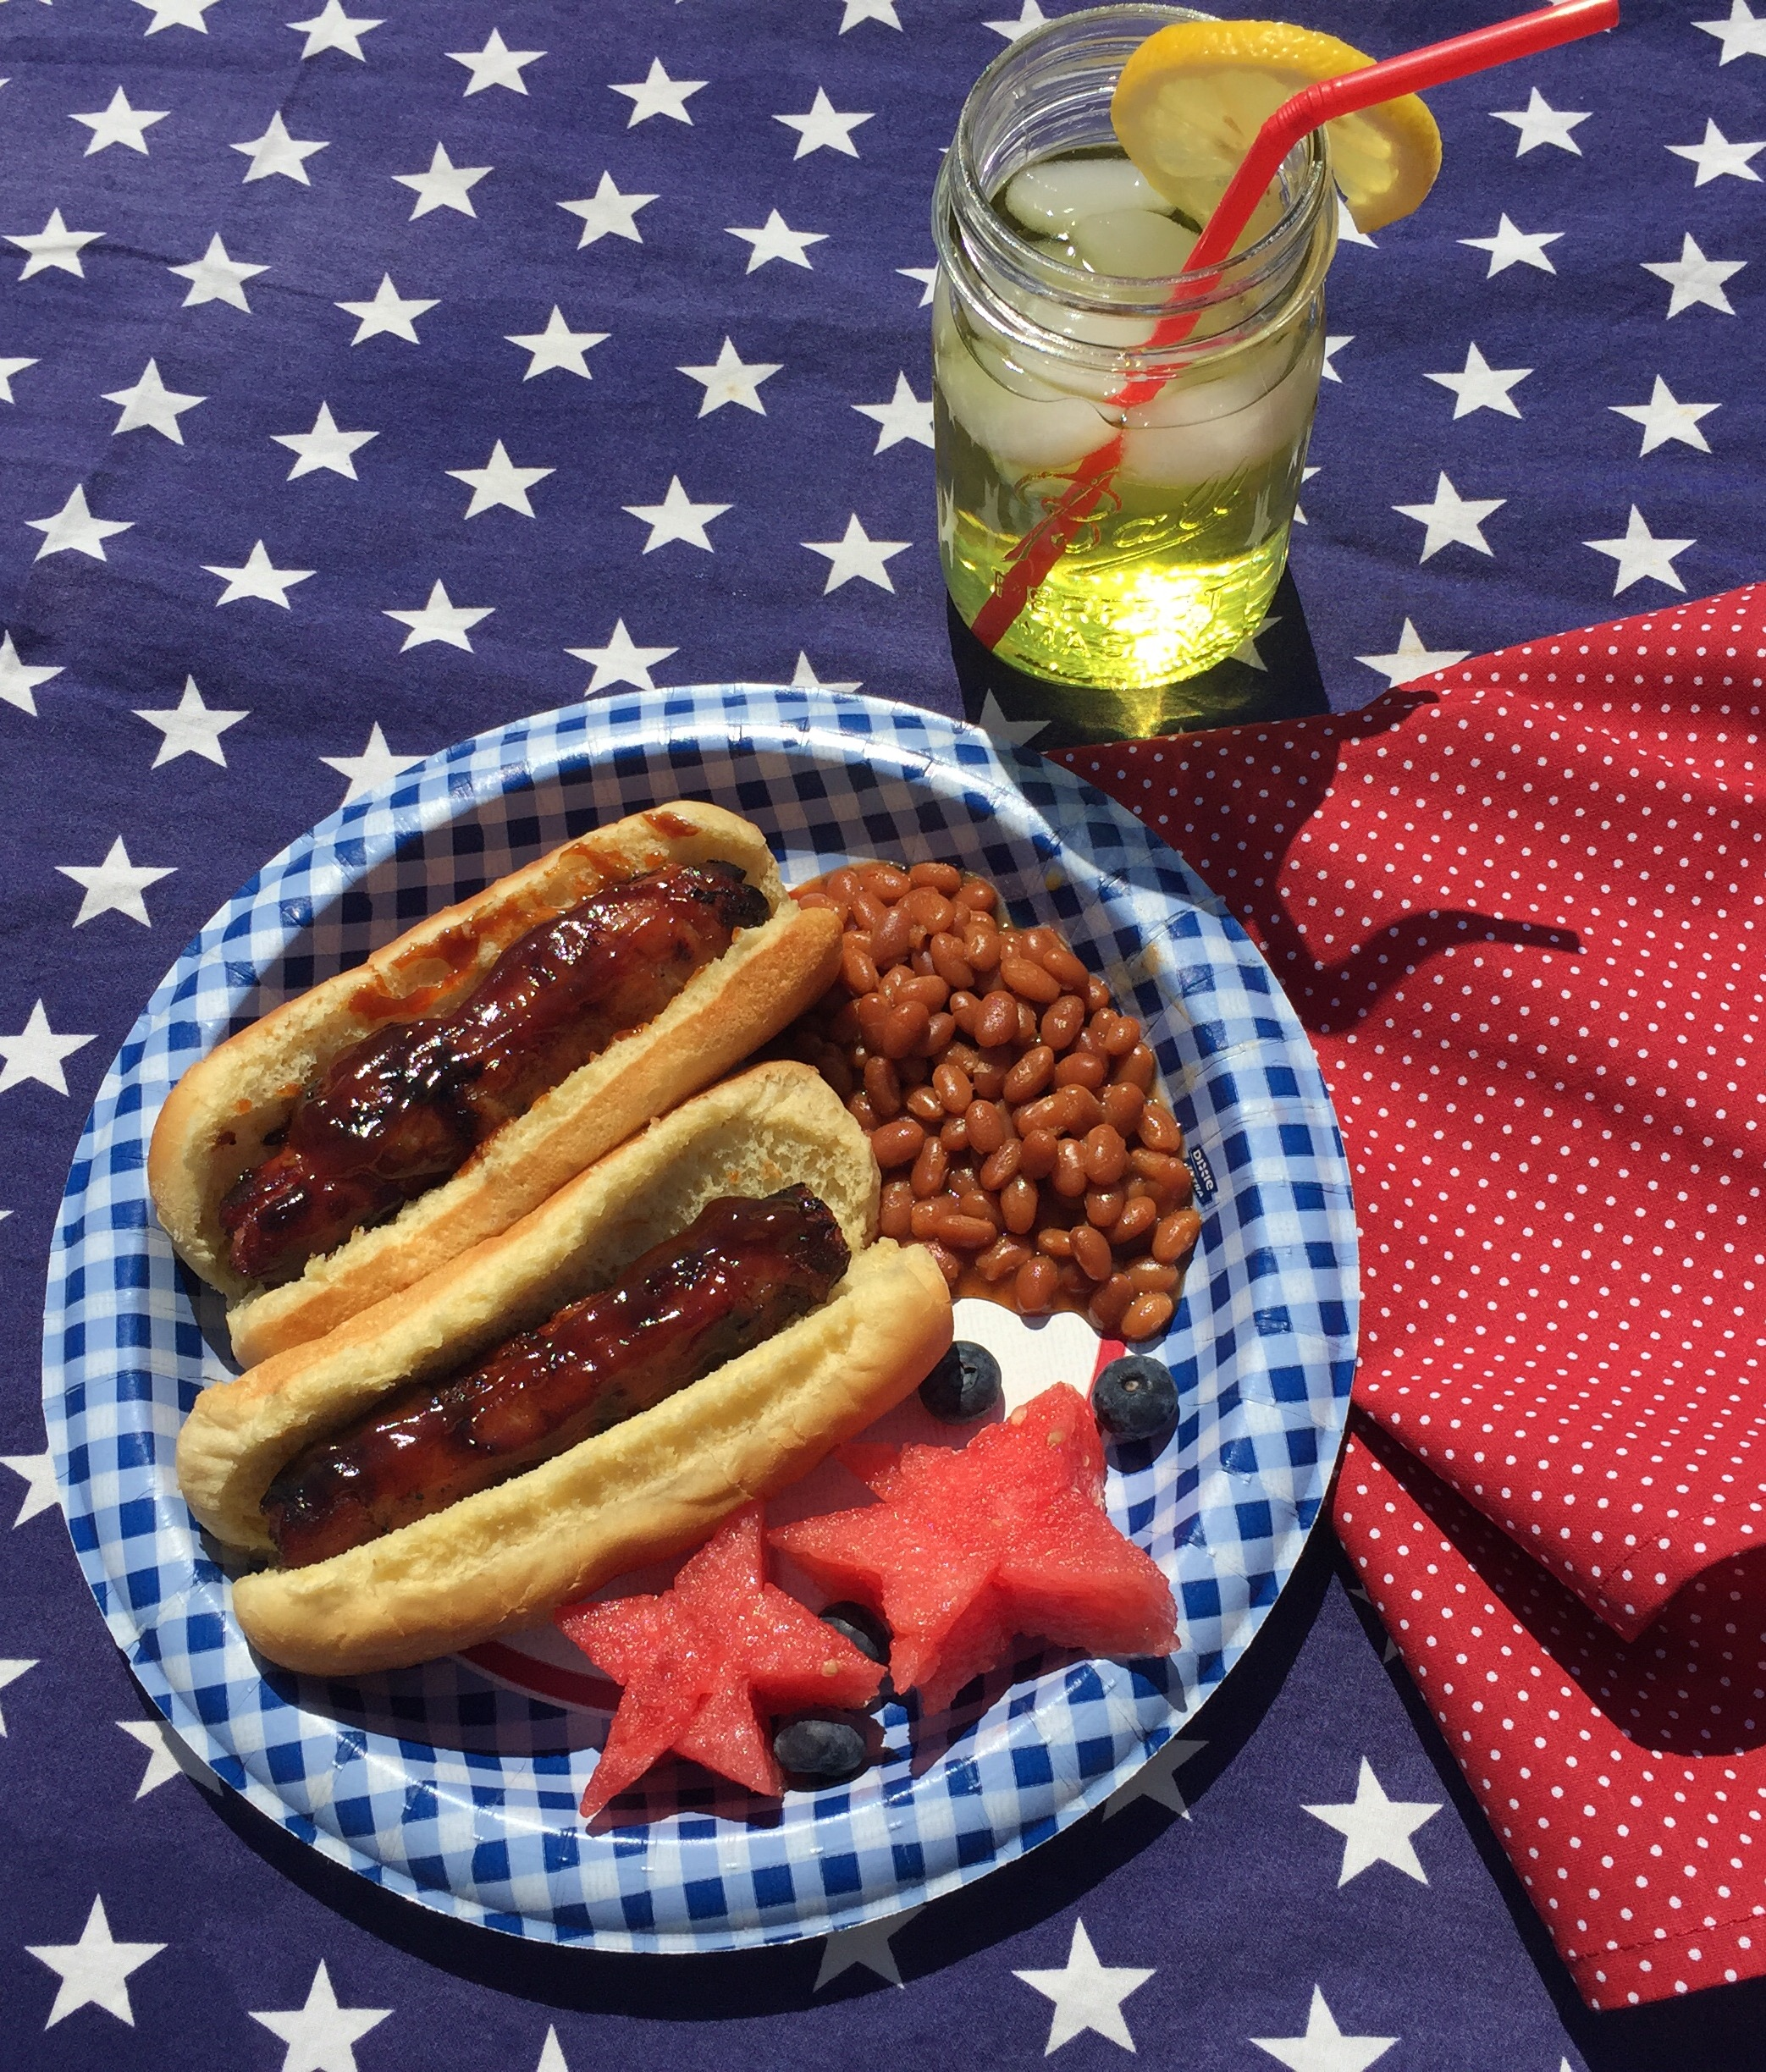 Bacaon wrapped hot dogs in barbecue sauce, on a blue checked pate with backed beans and watermelon